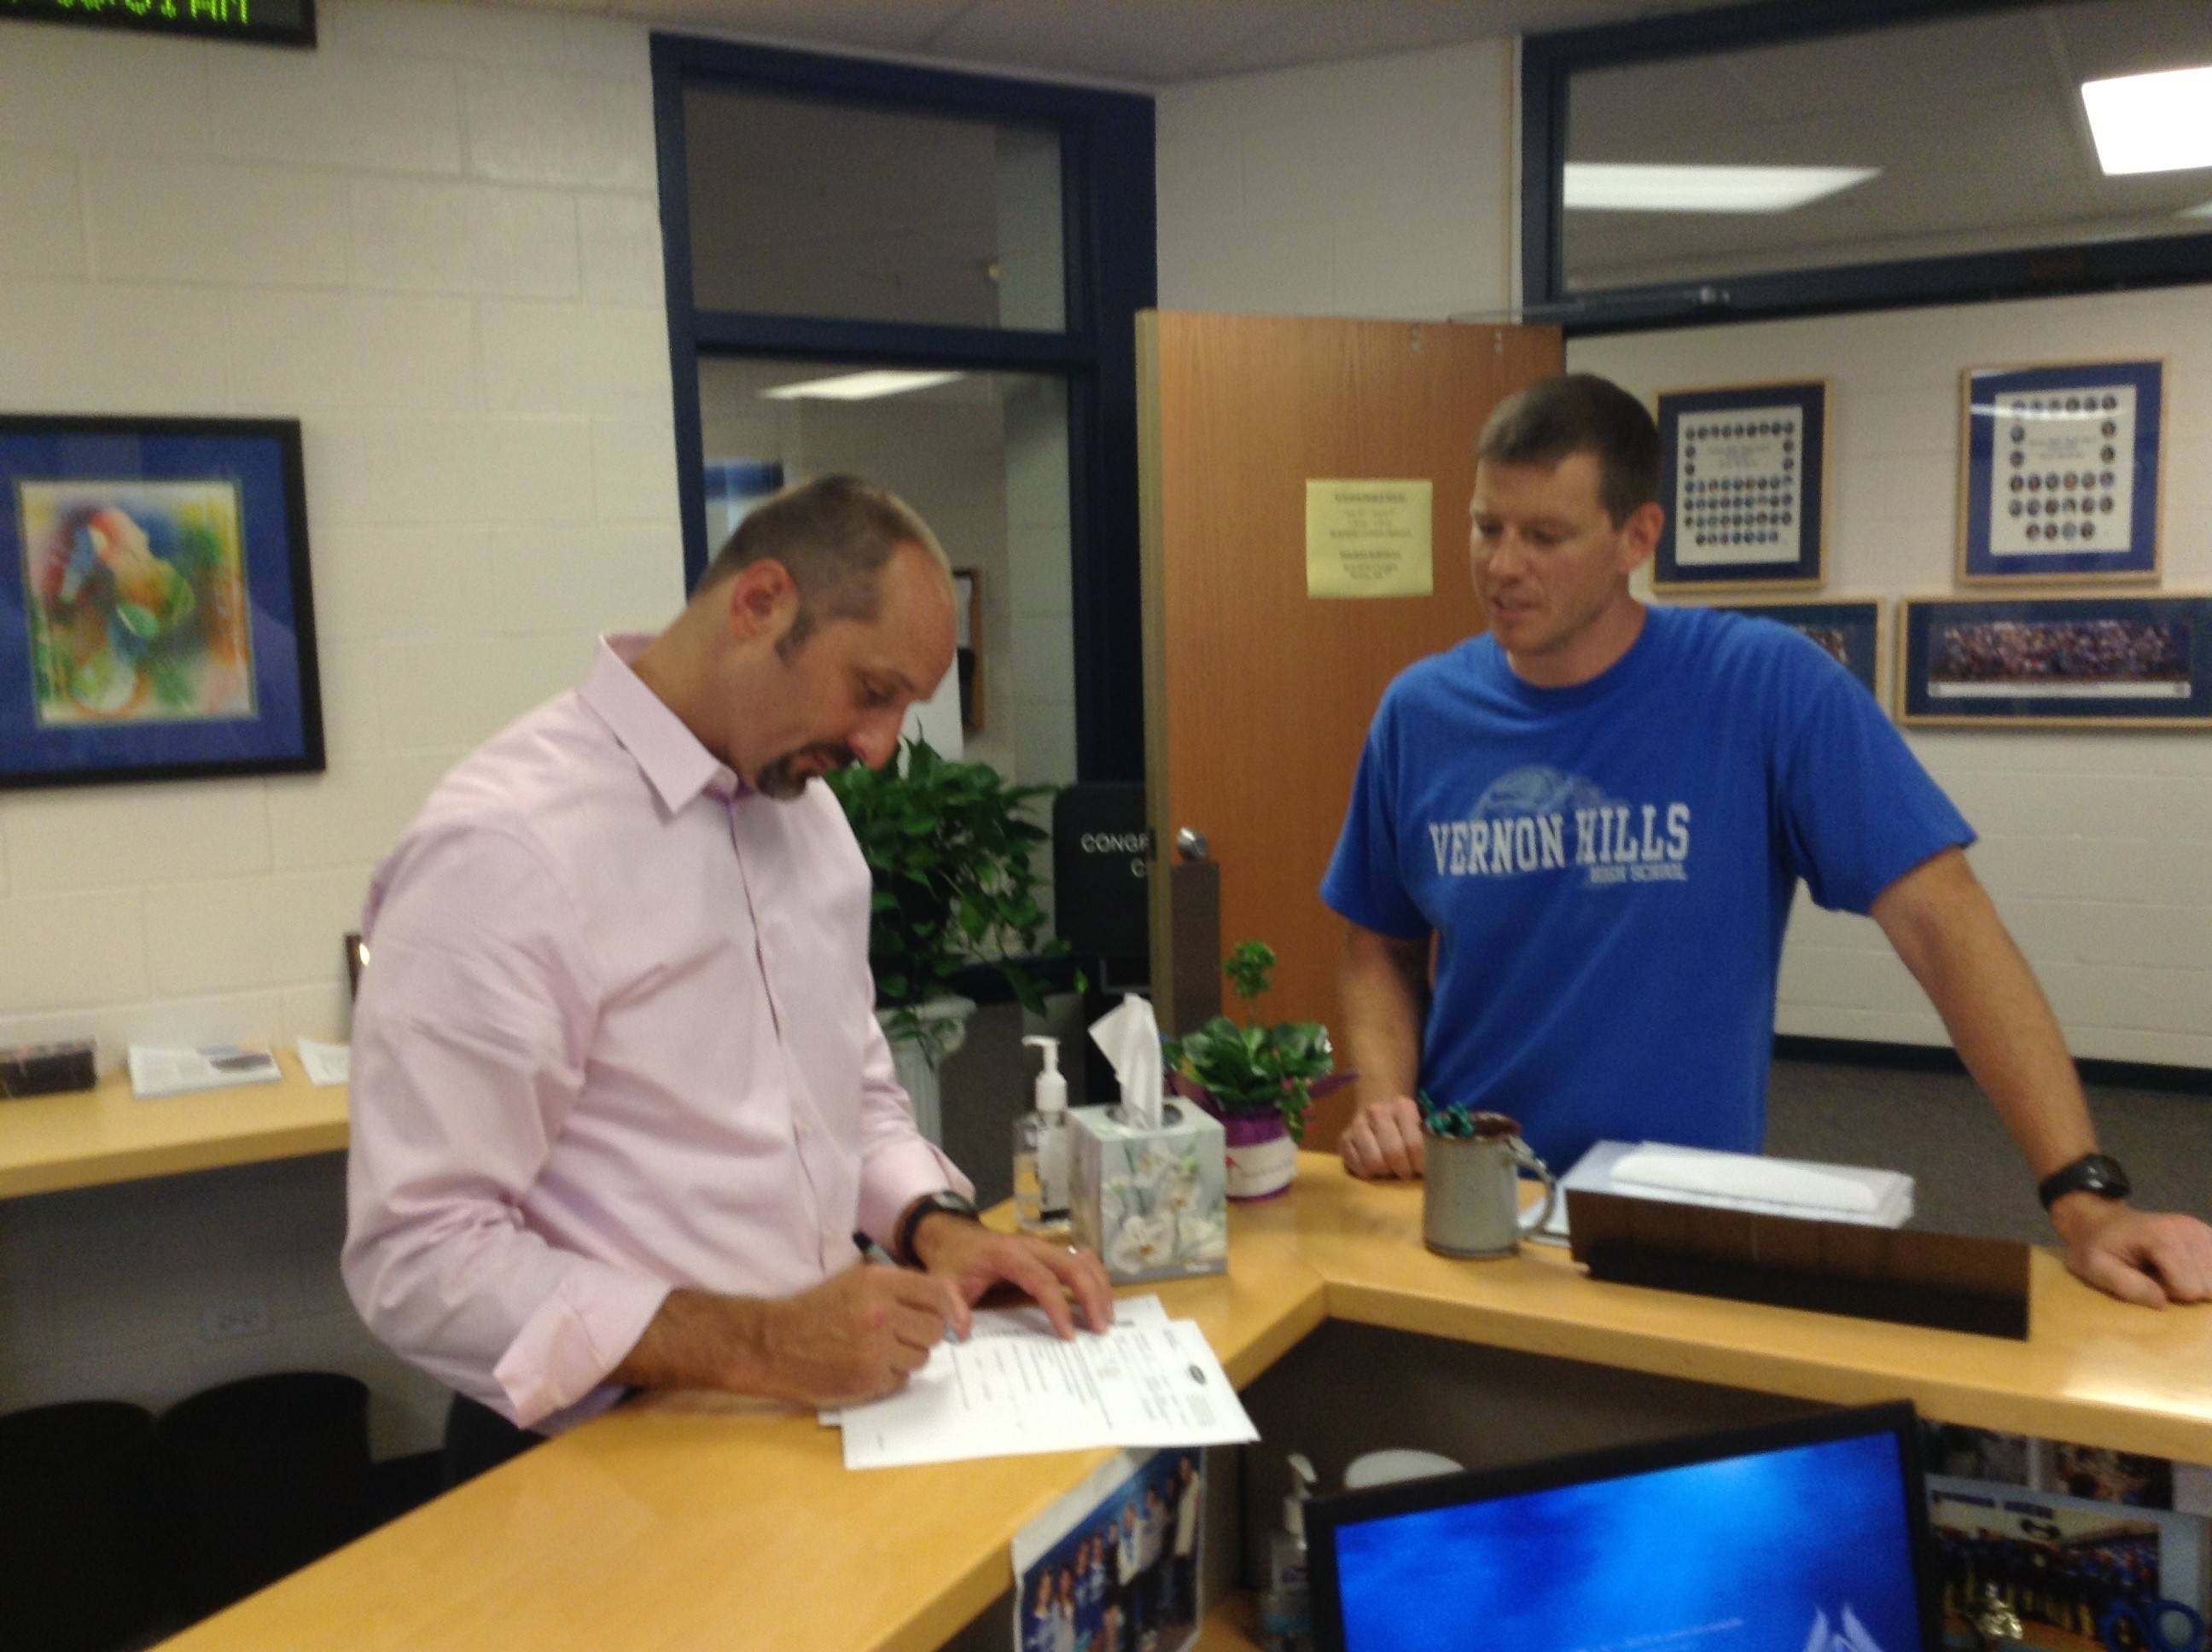 Vernon Hills High School Principal Jon Guillaume, left, signs paperwork for teacher and coach Ross Caton. Guillaume started as principal July 1.